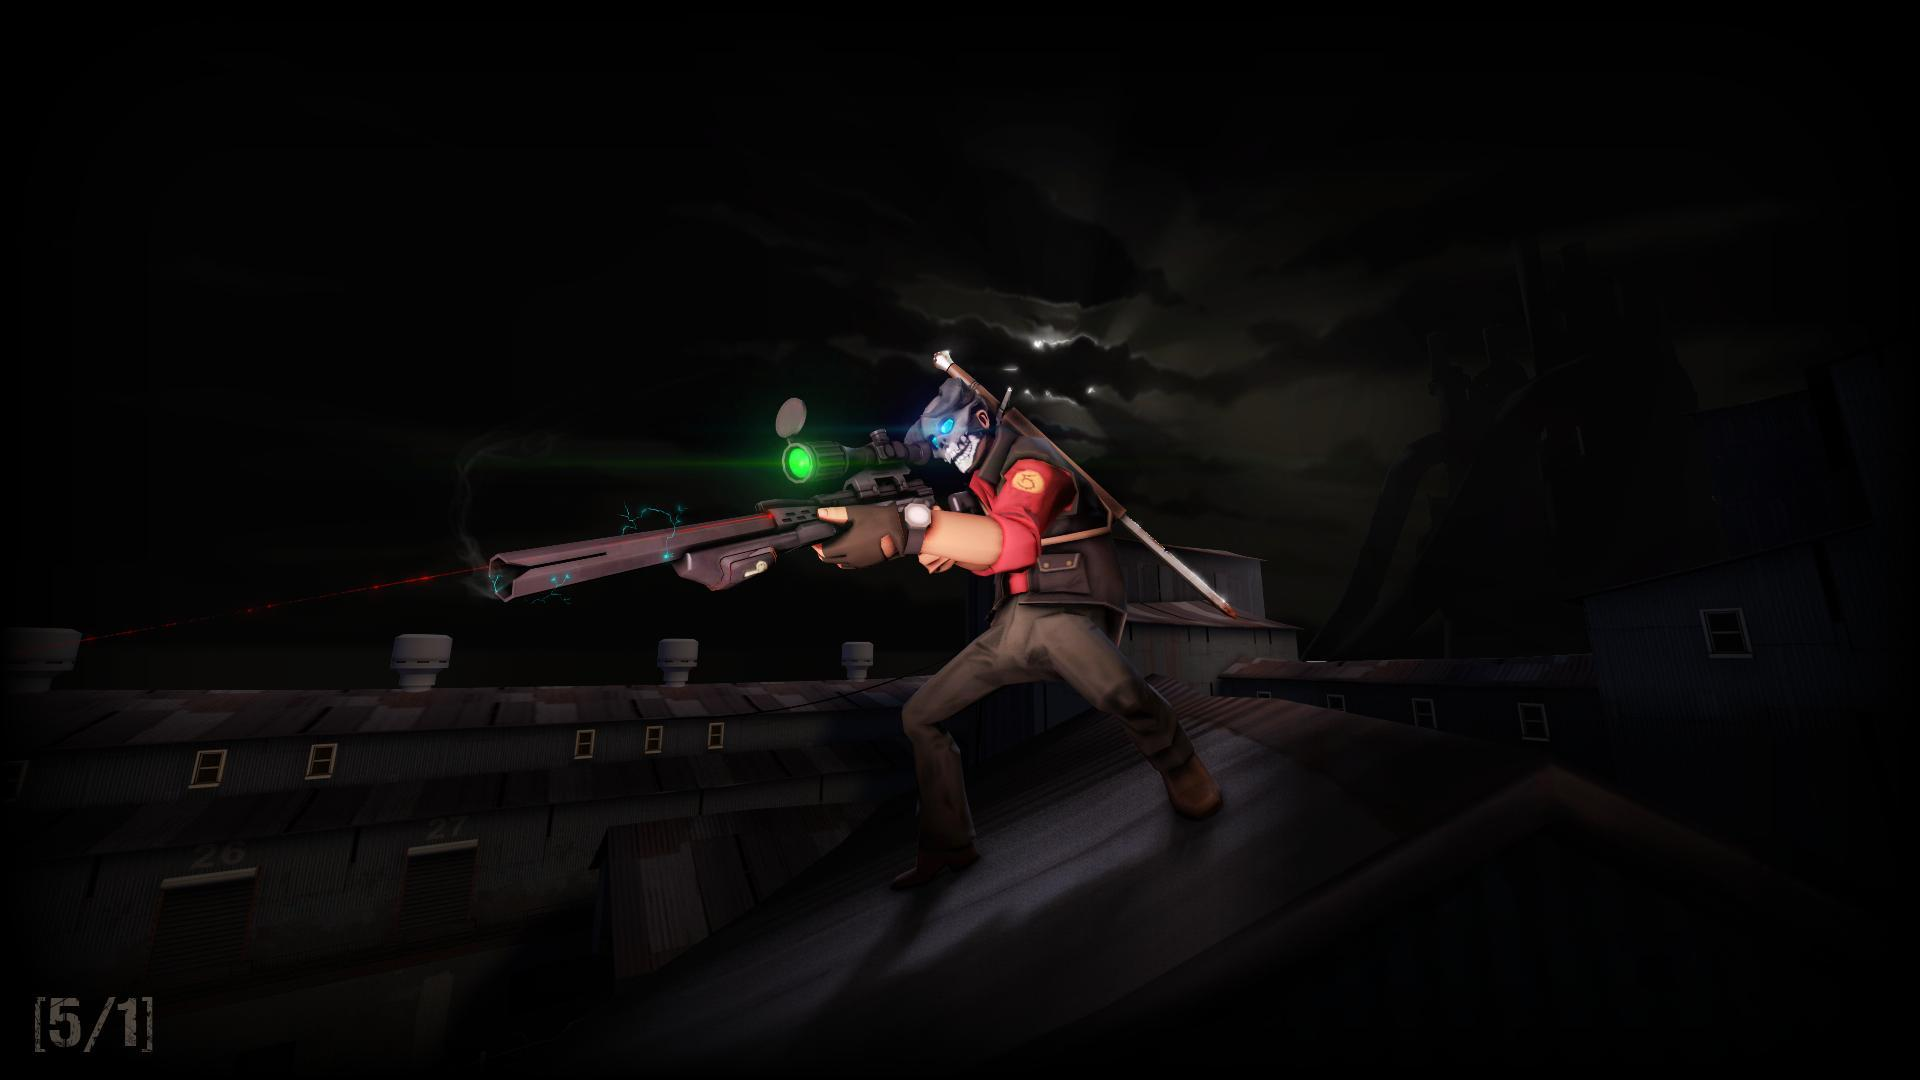 Awesome Wallpapers Girl Sniper Team Fortress 2 Soldier Wallpapers Wallpaper Cave